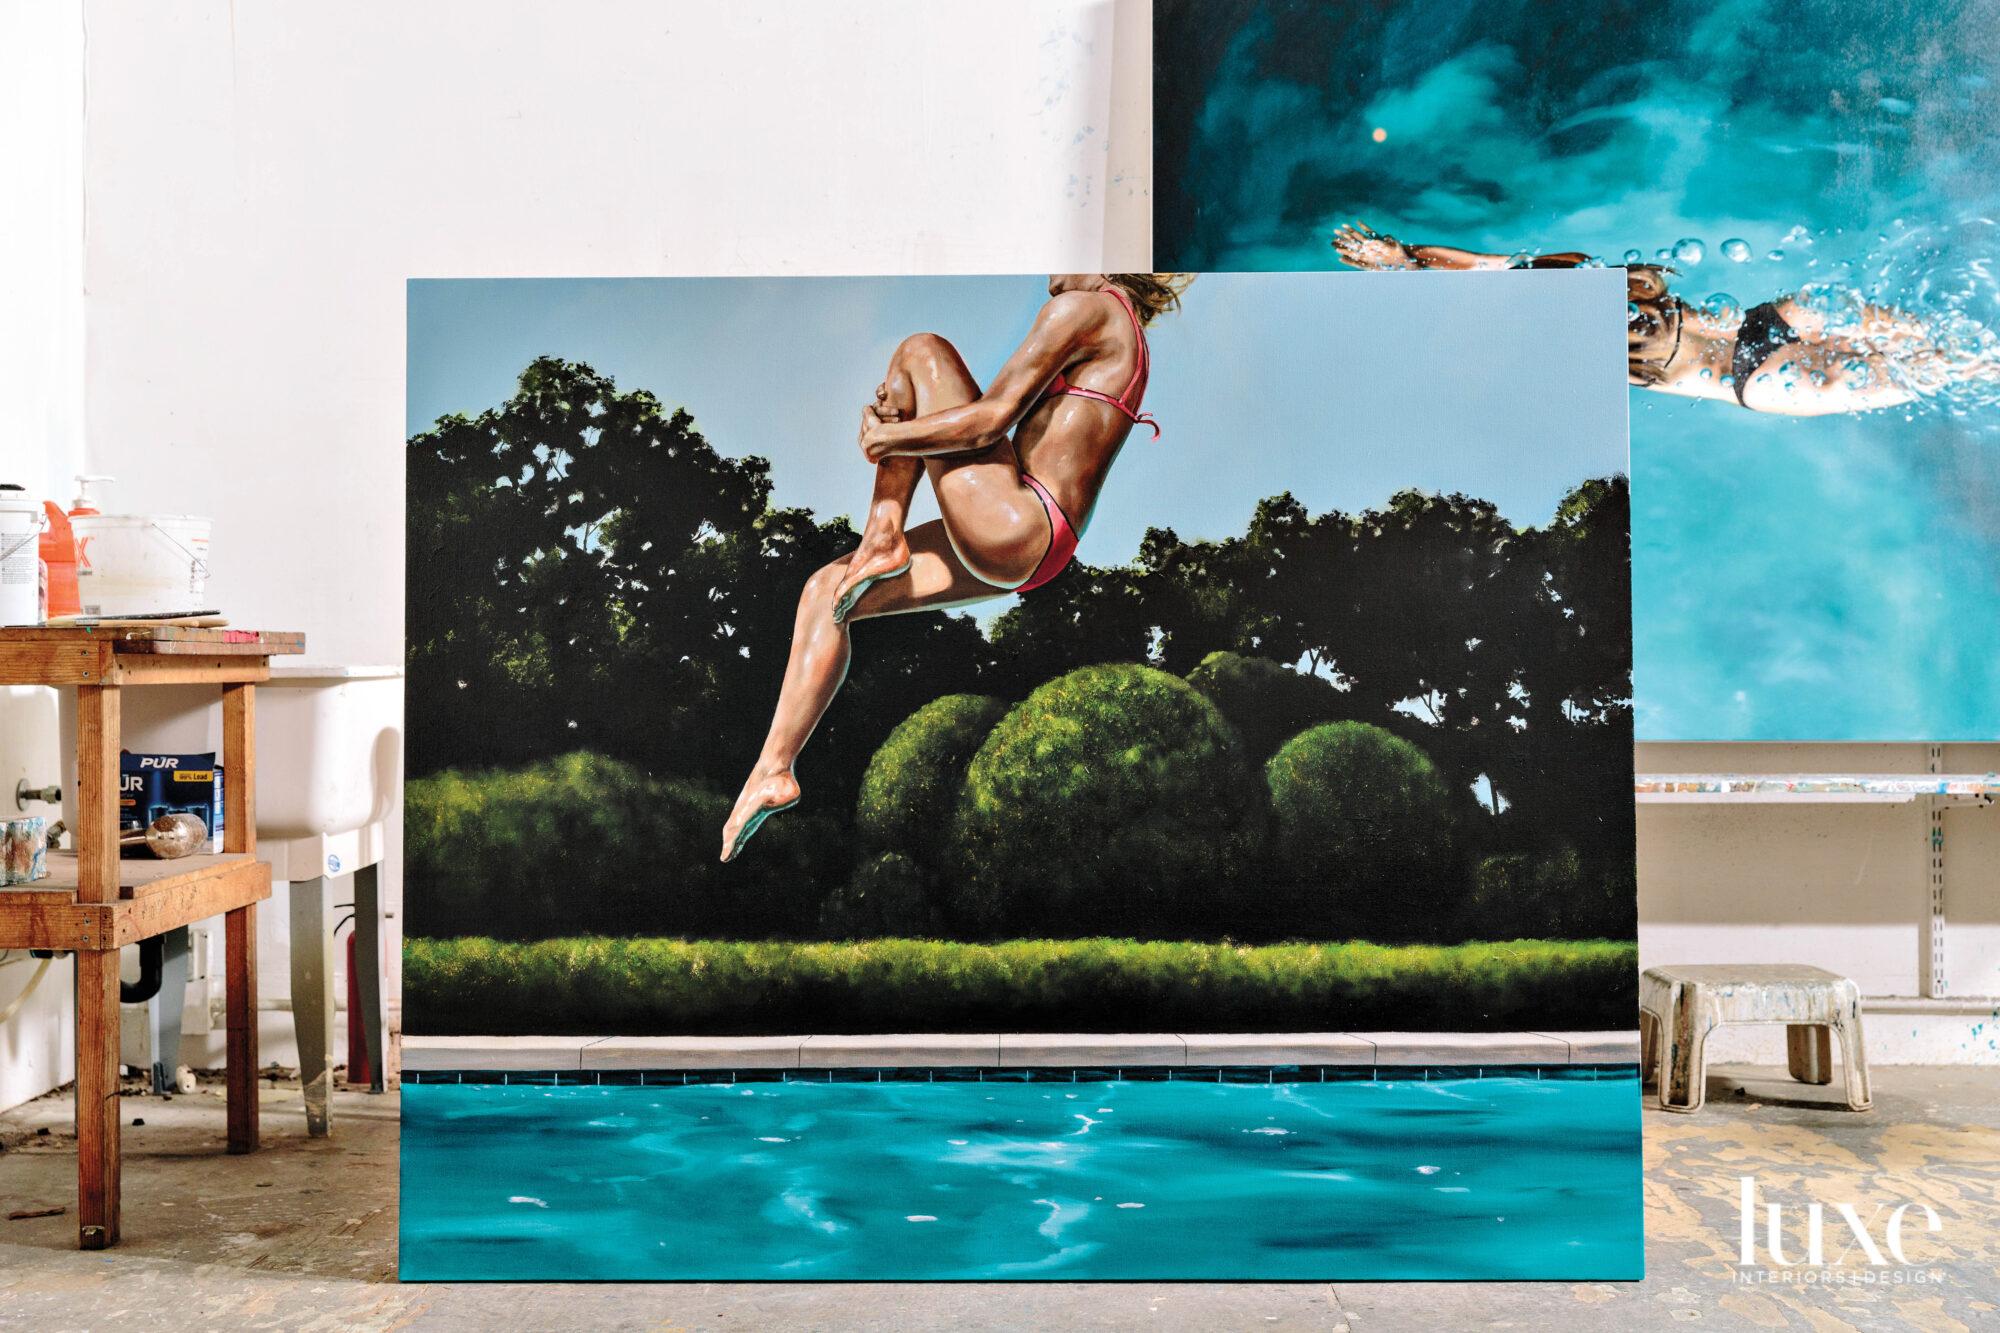 A painting shows a person leaping into a pool.